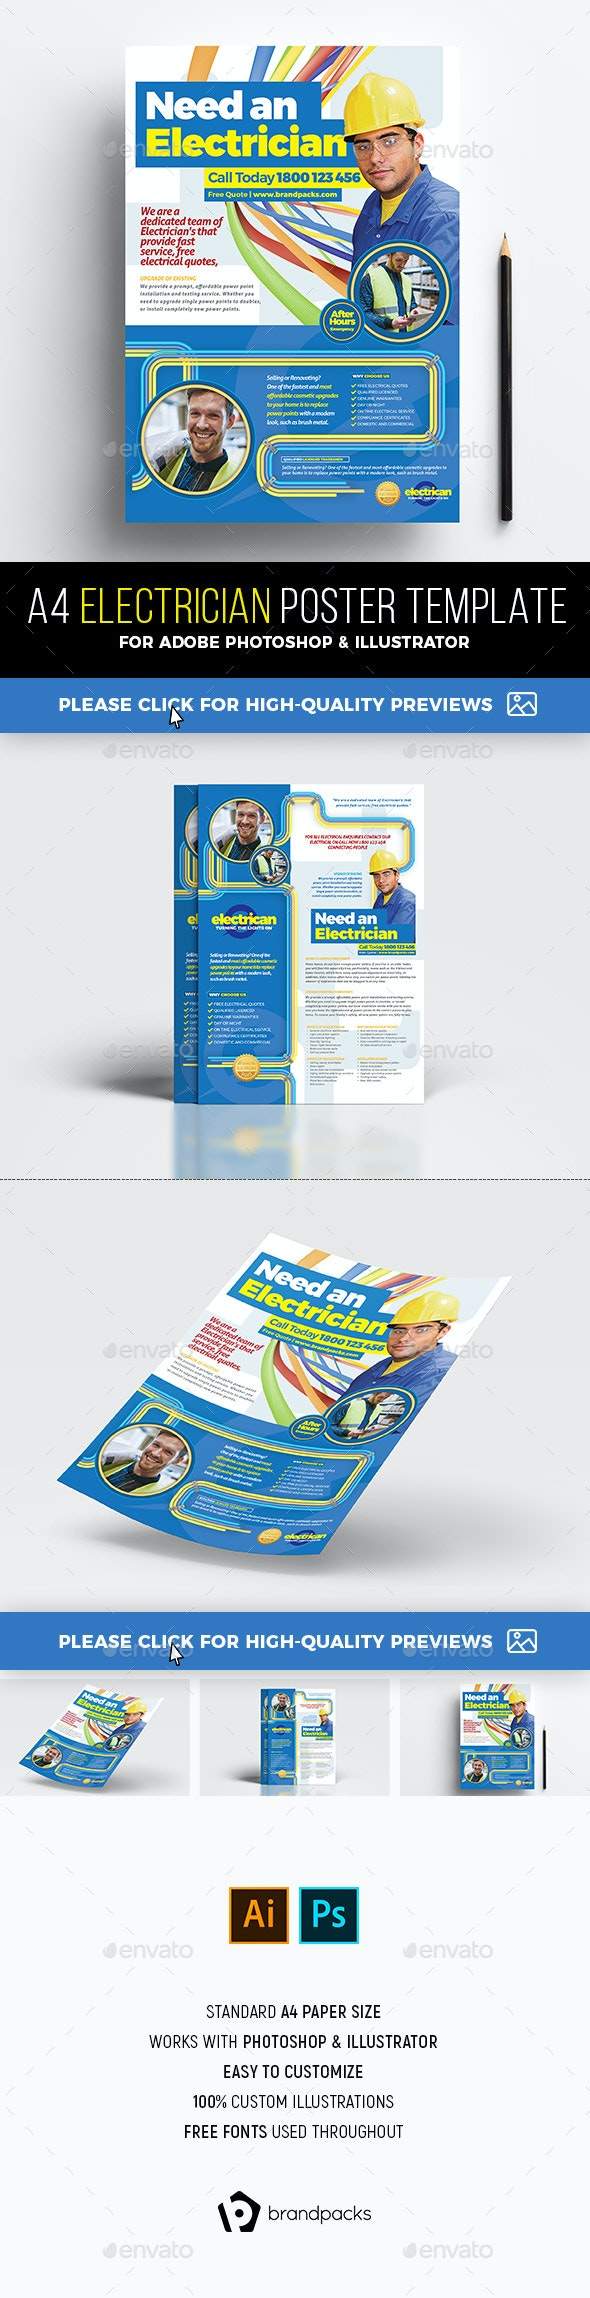 A4 Electrician Advertisement / Poster Template - Commerce Flyers